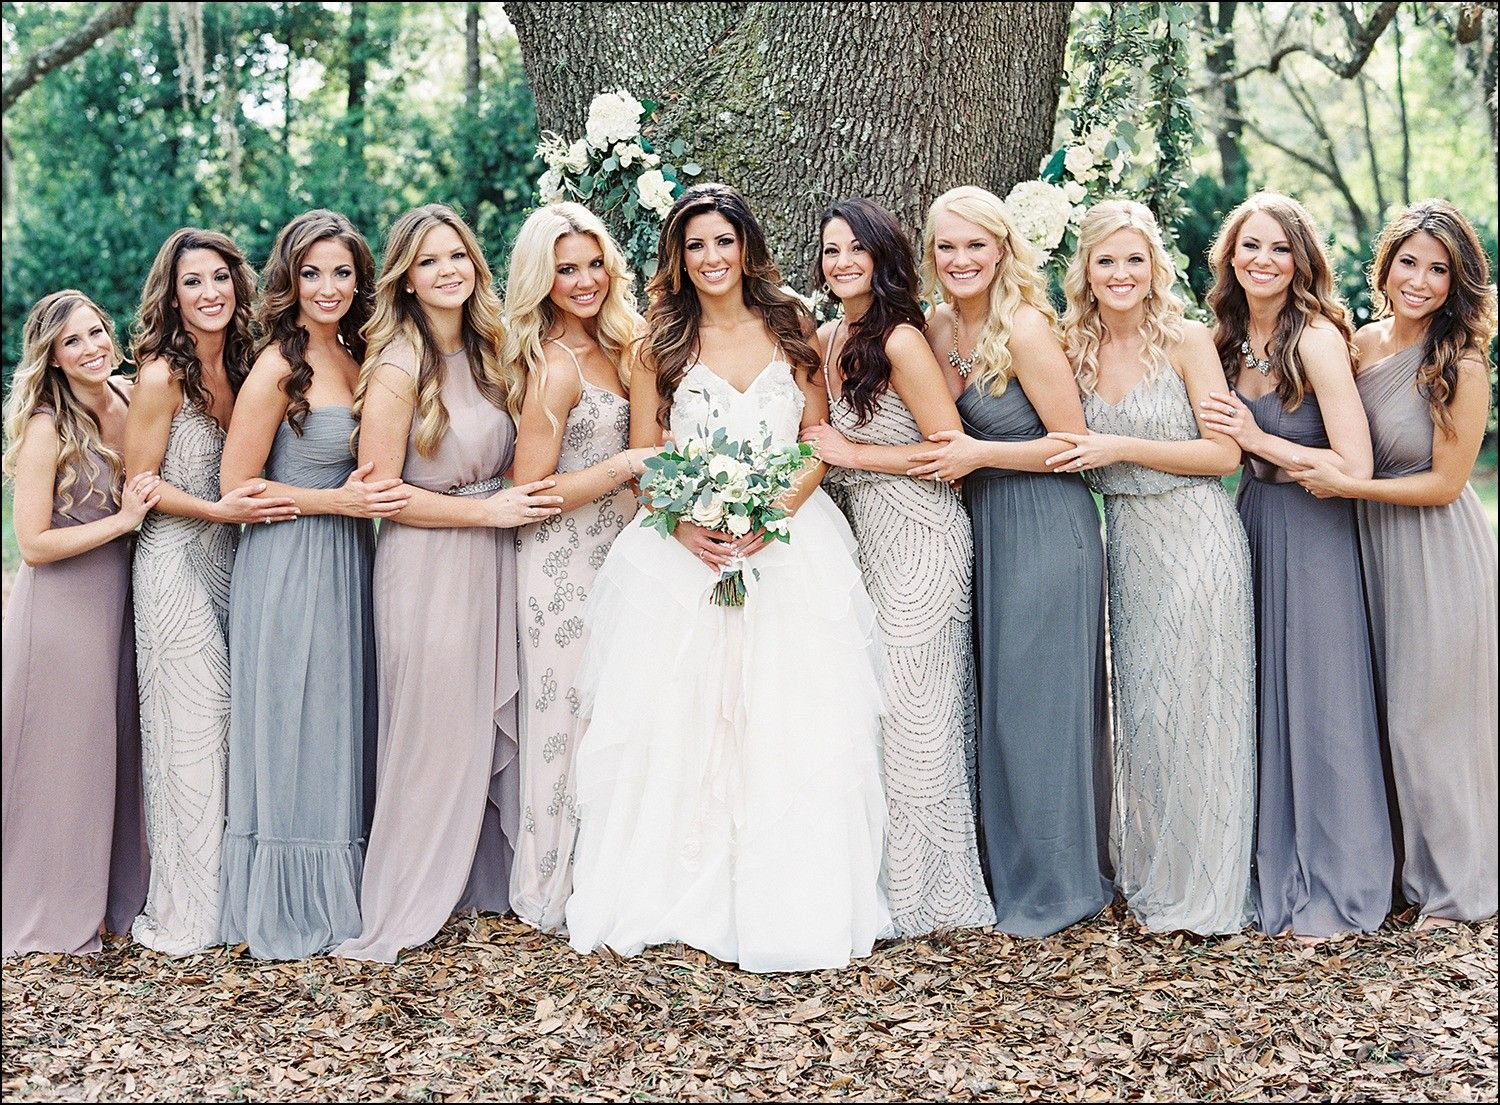 Different shades of grey bridesmaid dresses dresses and gowns different shades of grey bridesmaid dresses ombrellifo Choice Image